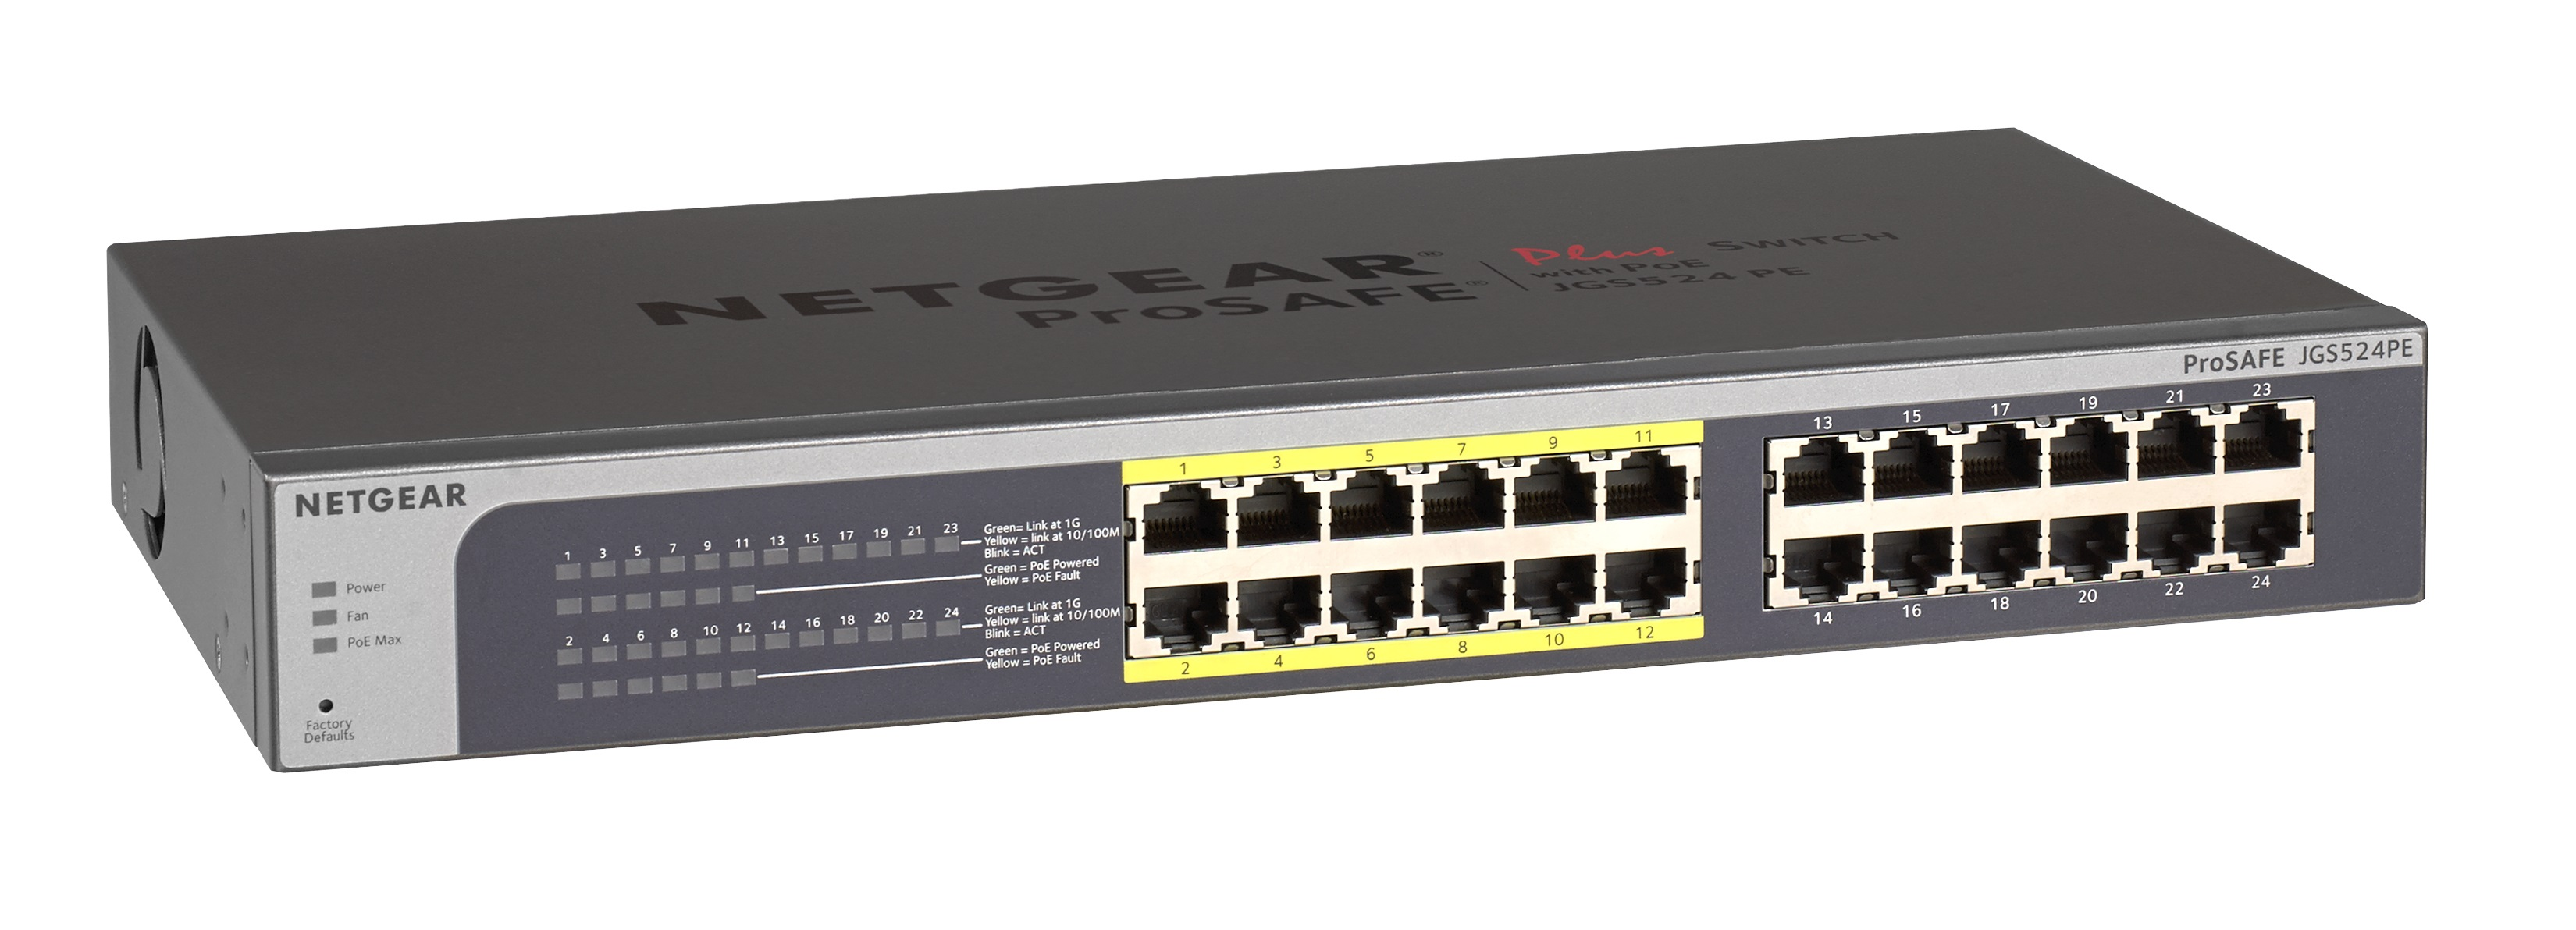 NETGEAR 24xGb/12x PoE Plus switch;100W;JGS524PE